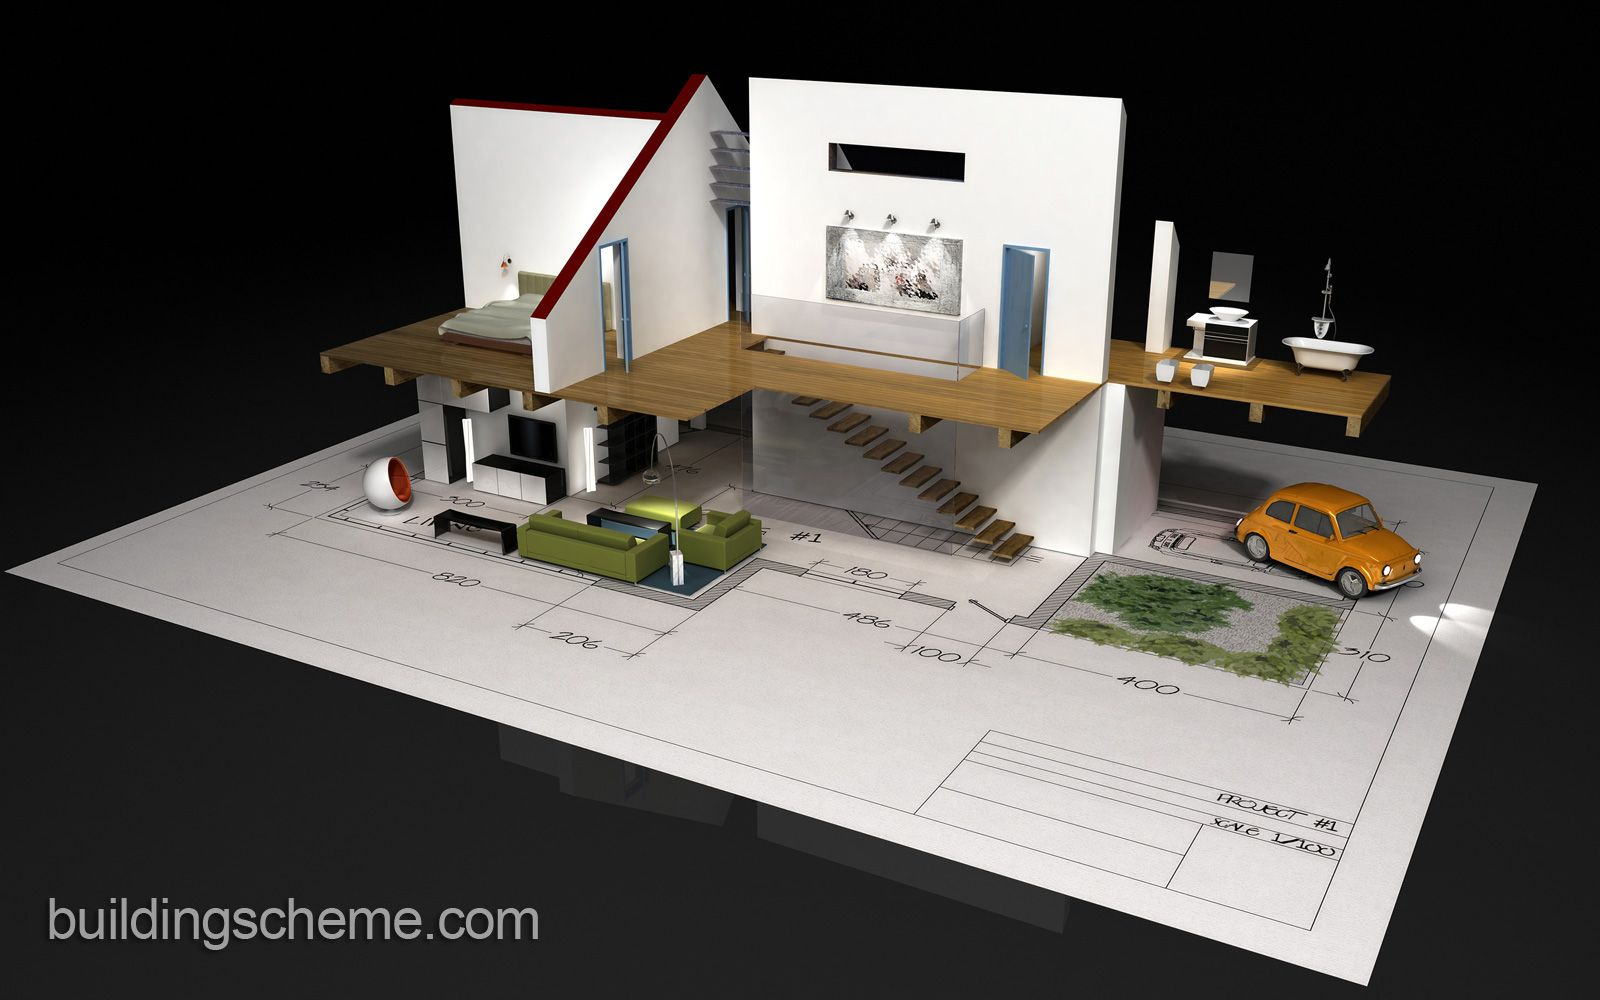 Good Building Scheme And Floor Plans Ideas For House And Office Design Building Scheme Model For Modern Two Storrey House With A Gara